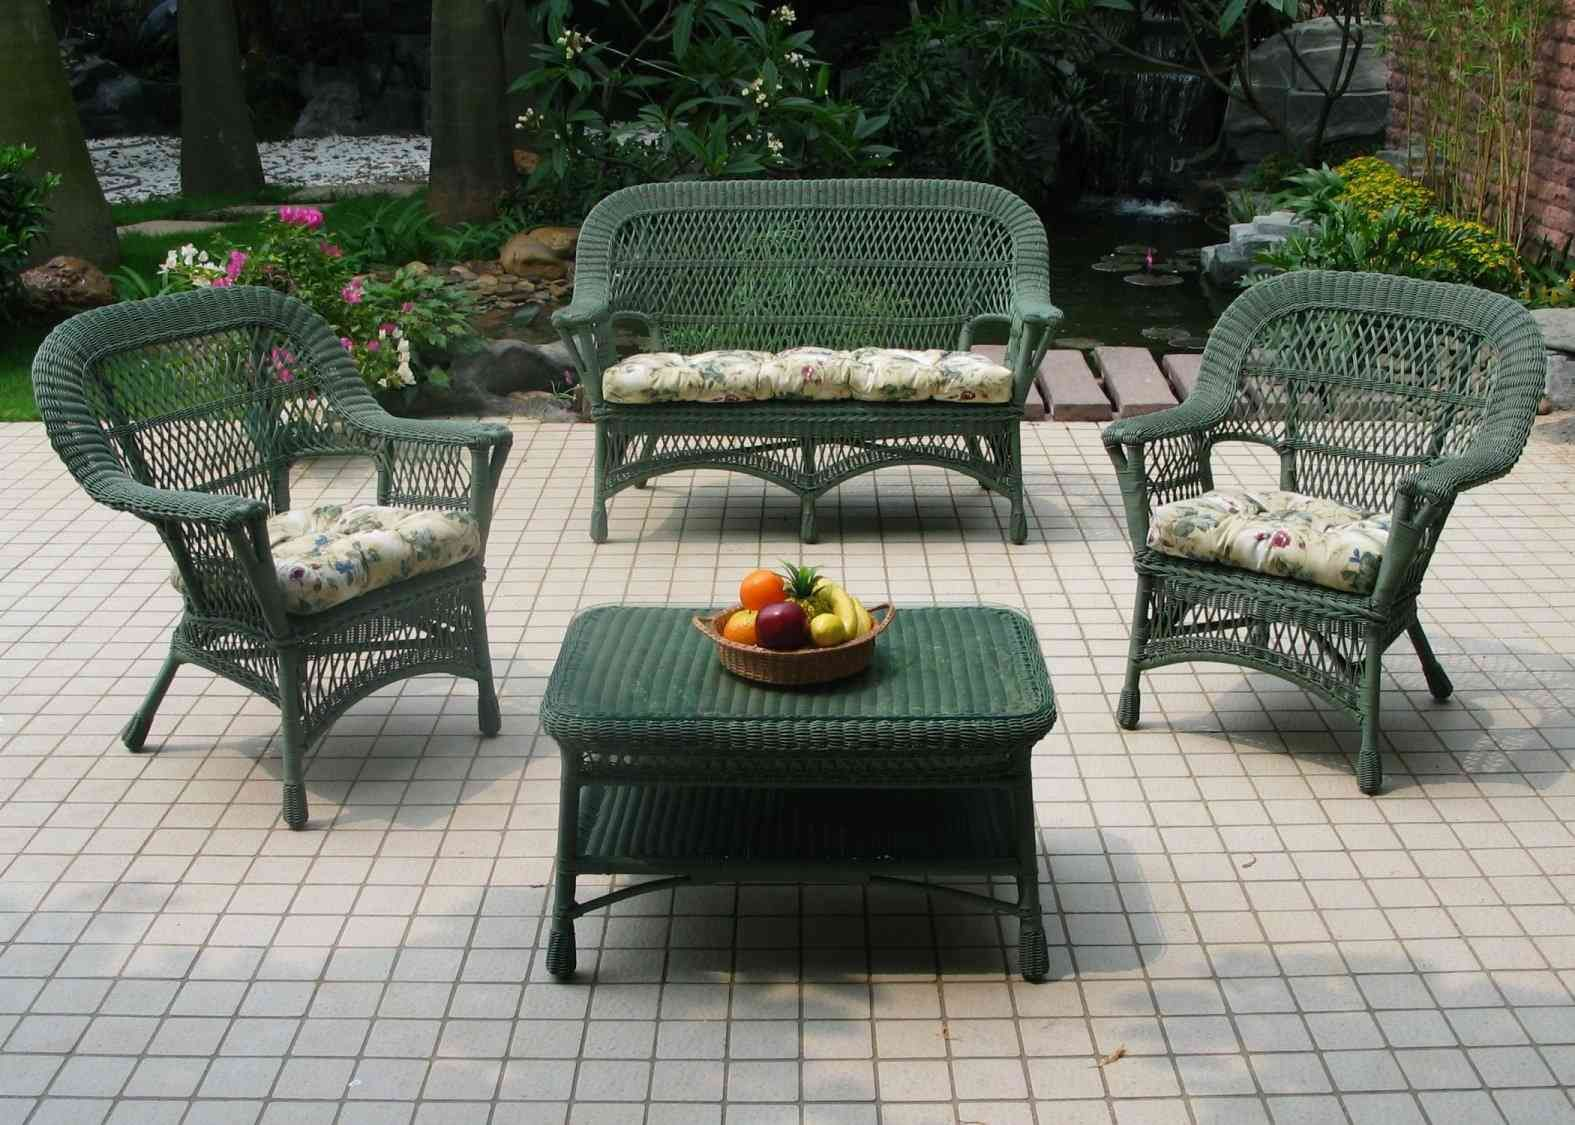 Furnitures Clic Green Wicker Patio Furniture Set Above Ceramic Floor Around The Plants And Flowers